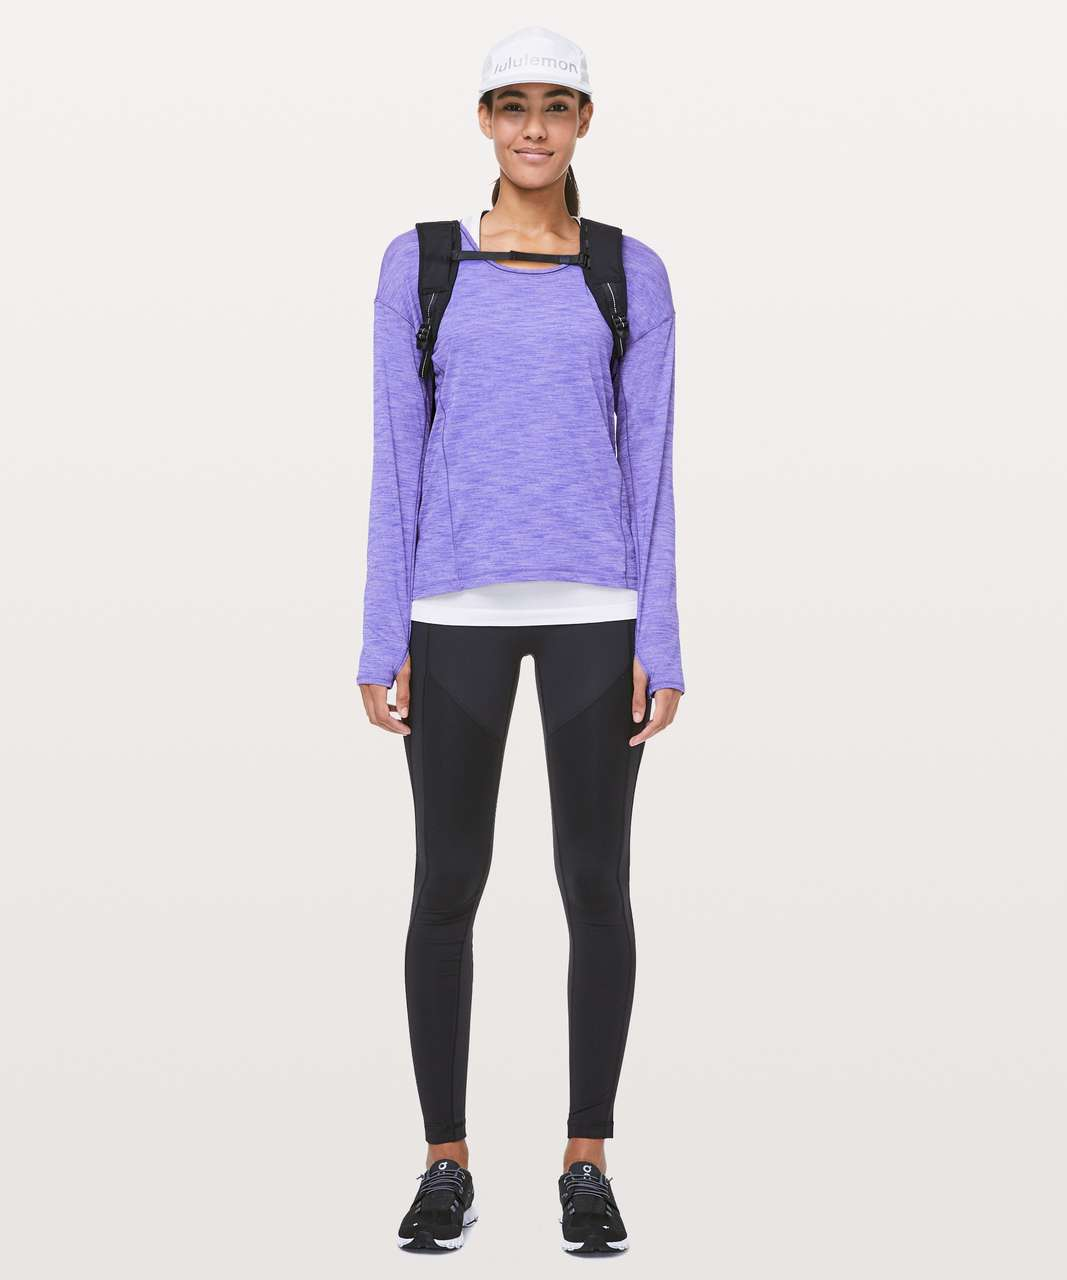 Lululemon Sweat Embrace Long Sleeve - Heathered Lazurite